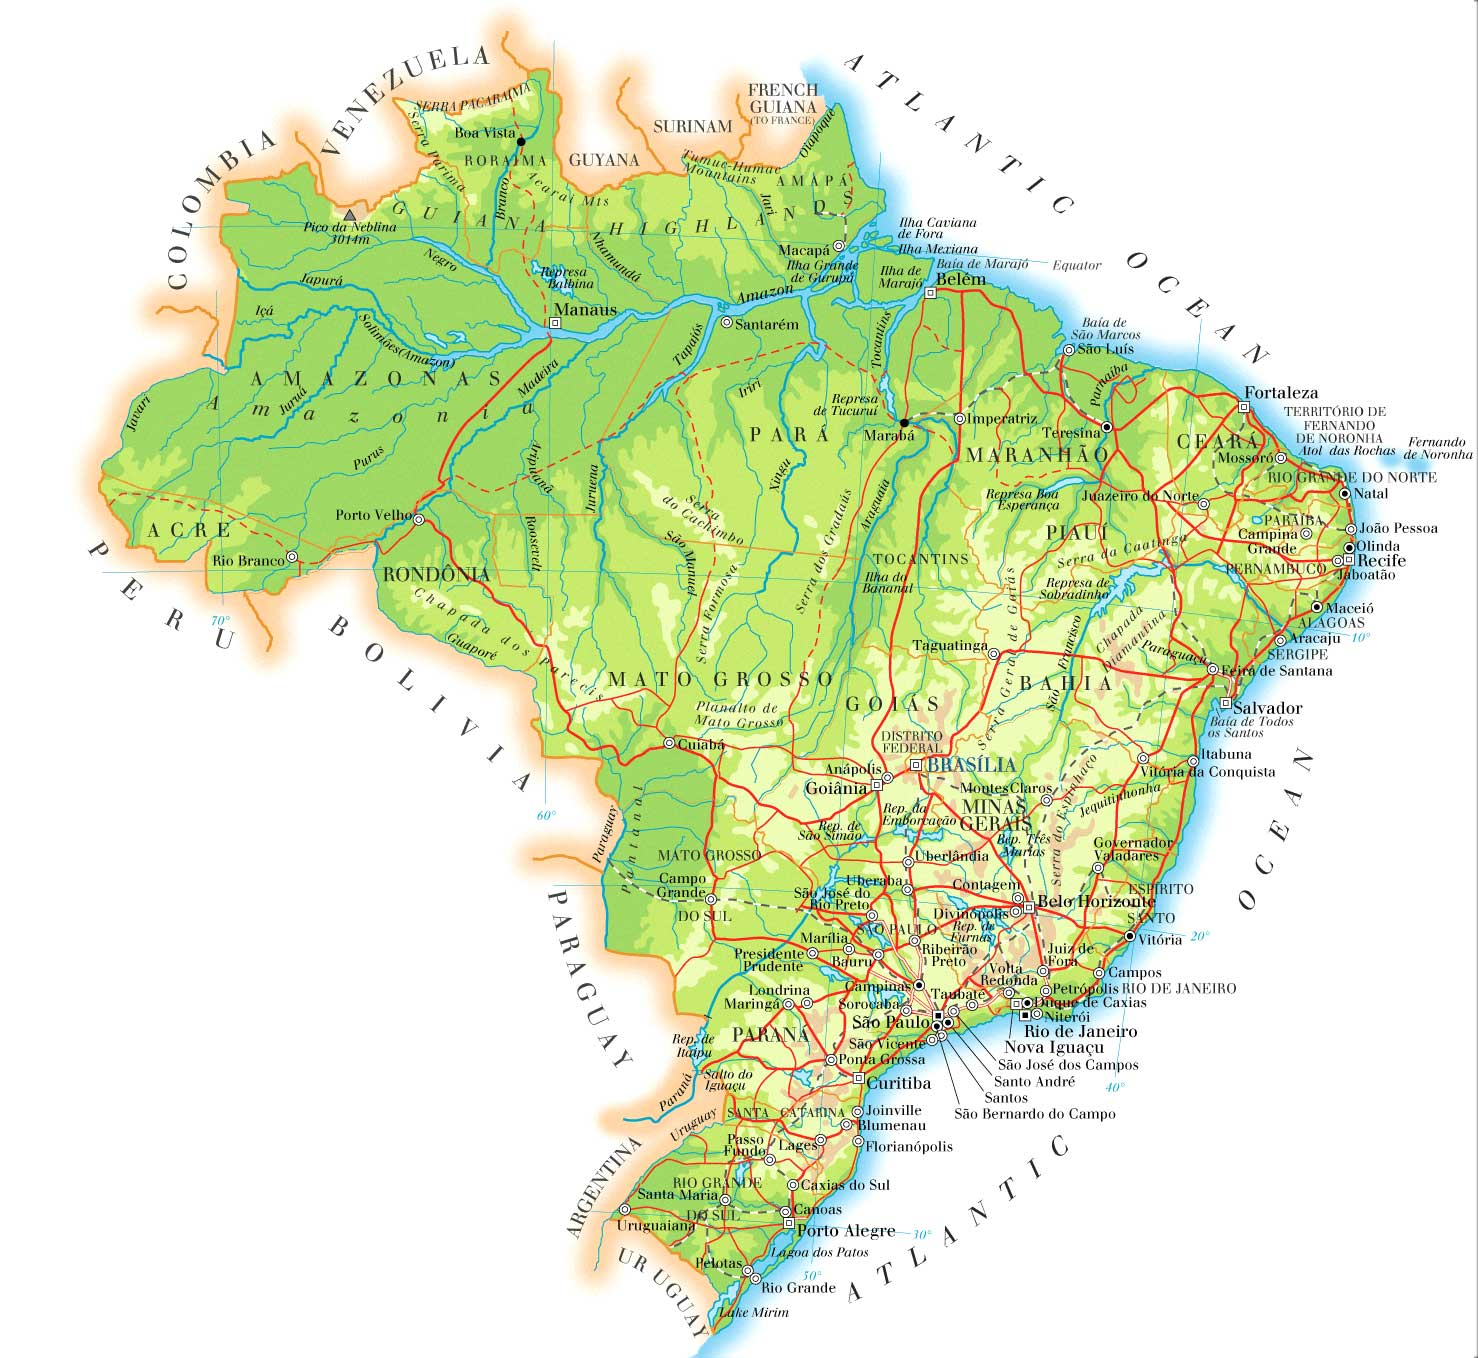 WwwMappinet Maps Of Countries Brazil - Brazil states map